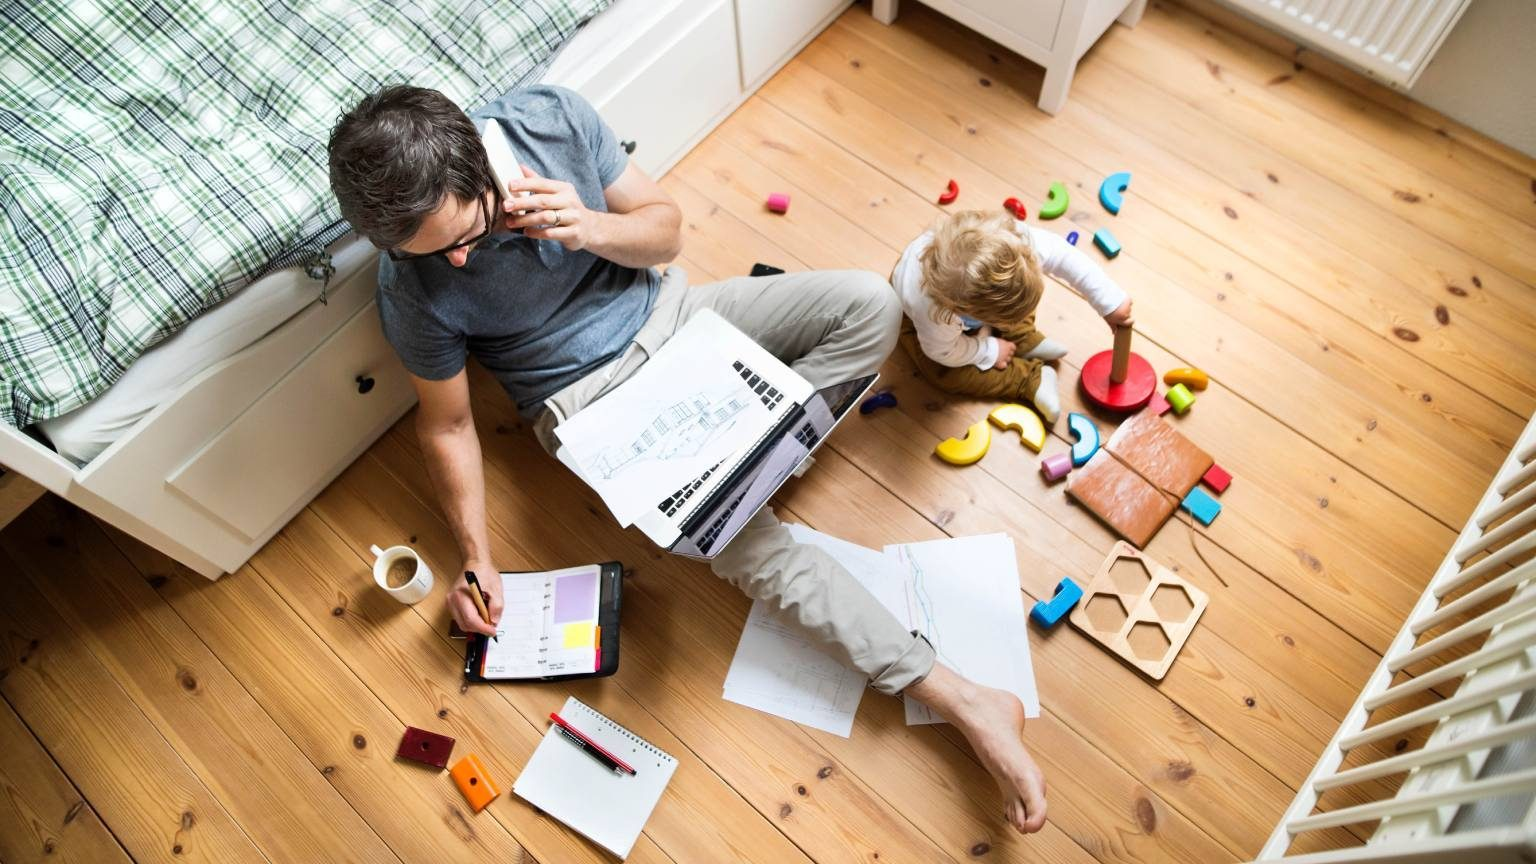 Dad working from home on laptop with paper spread around on floor while child plays